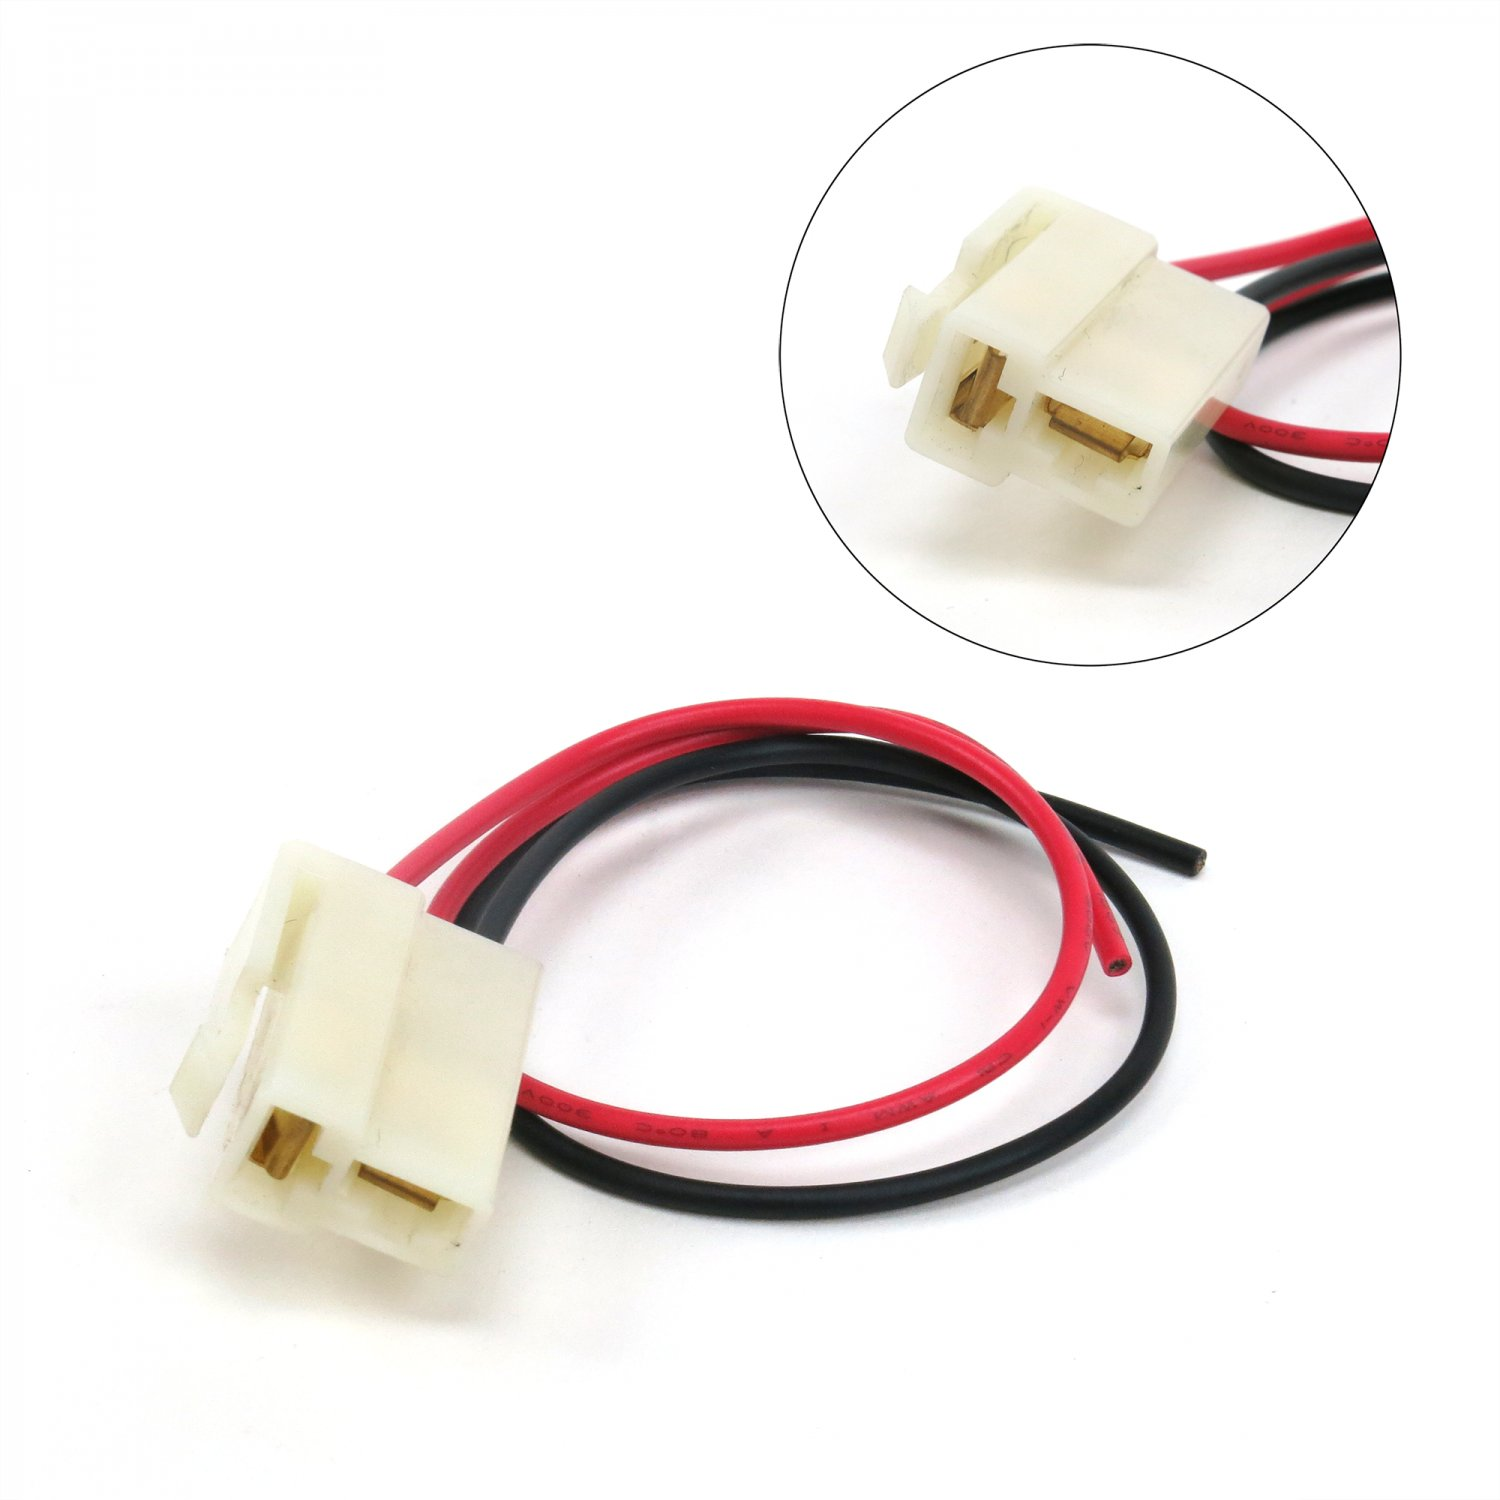 Fan Wire Harness For Plus Connector Ebay Easy Wiring Make It Rod Temp Solutions Makes A Snap To Up Any Of Our Fans Simply Plug In The And Connect Your Ideal Fast